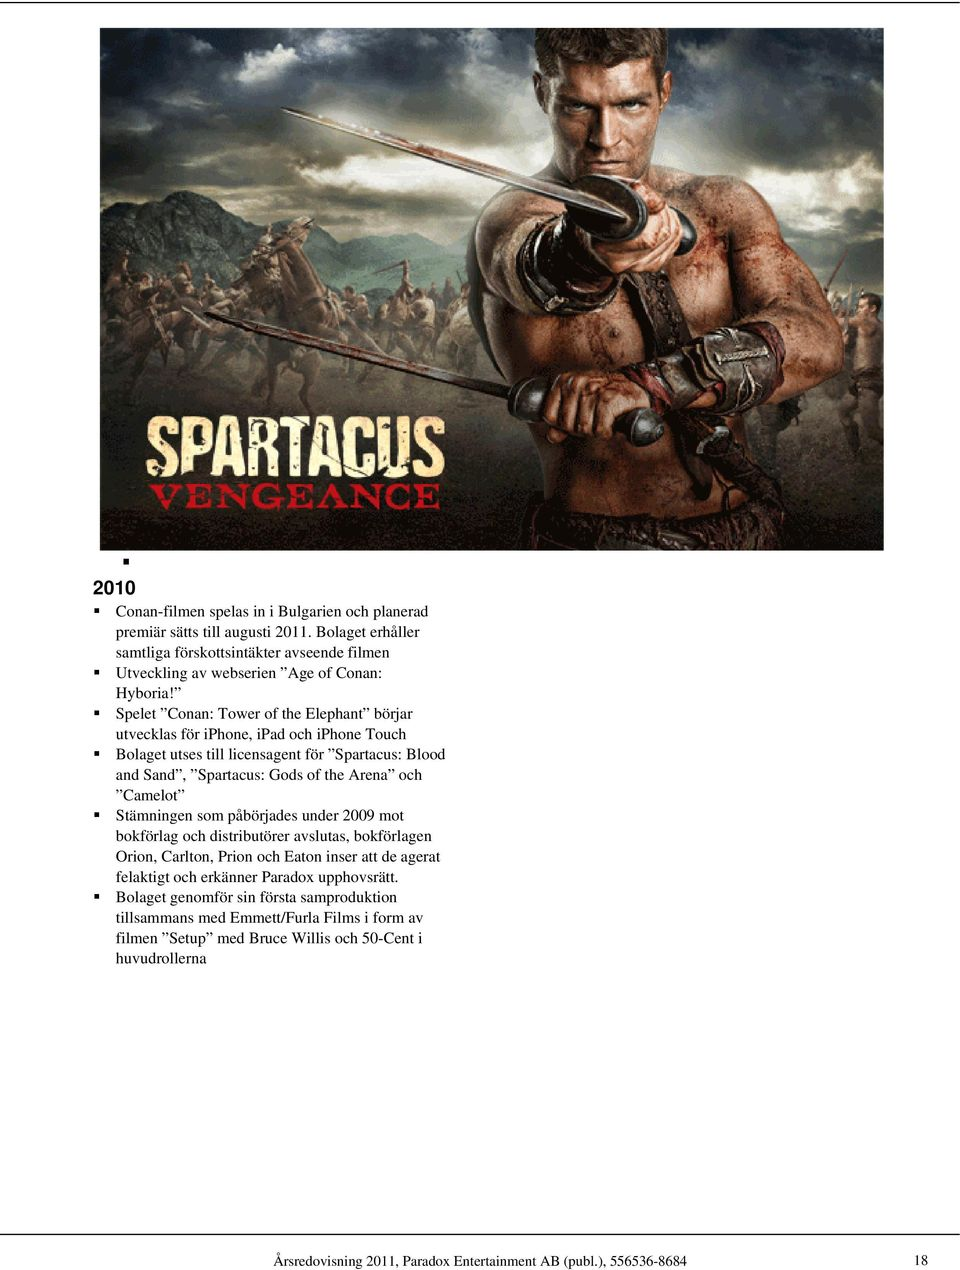 Spelet Conan: Tower of the Elephant börjar utvecklas för iphone, ipad och iphone Touch Bolaget utses till licensagent för Spartacus: Blood and Sand, Spartacus: Gods of the Arena